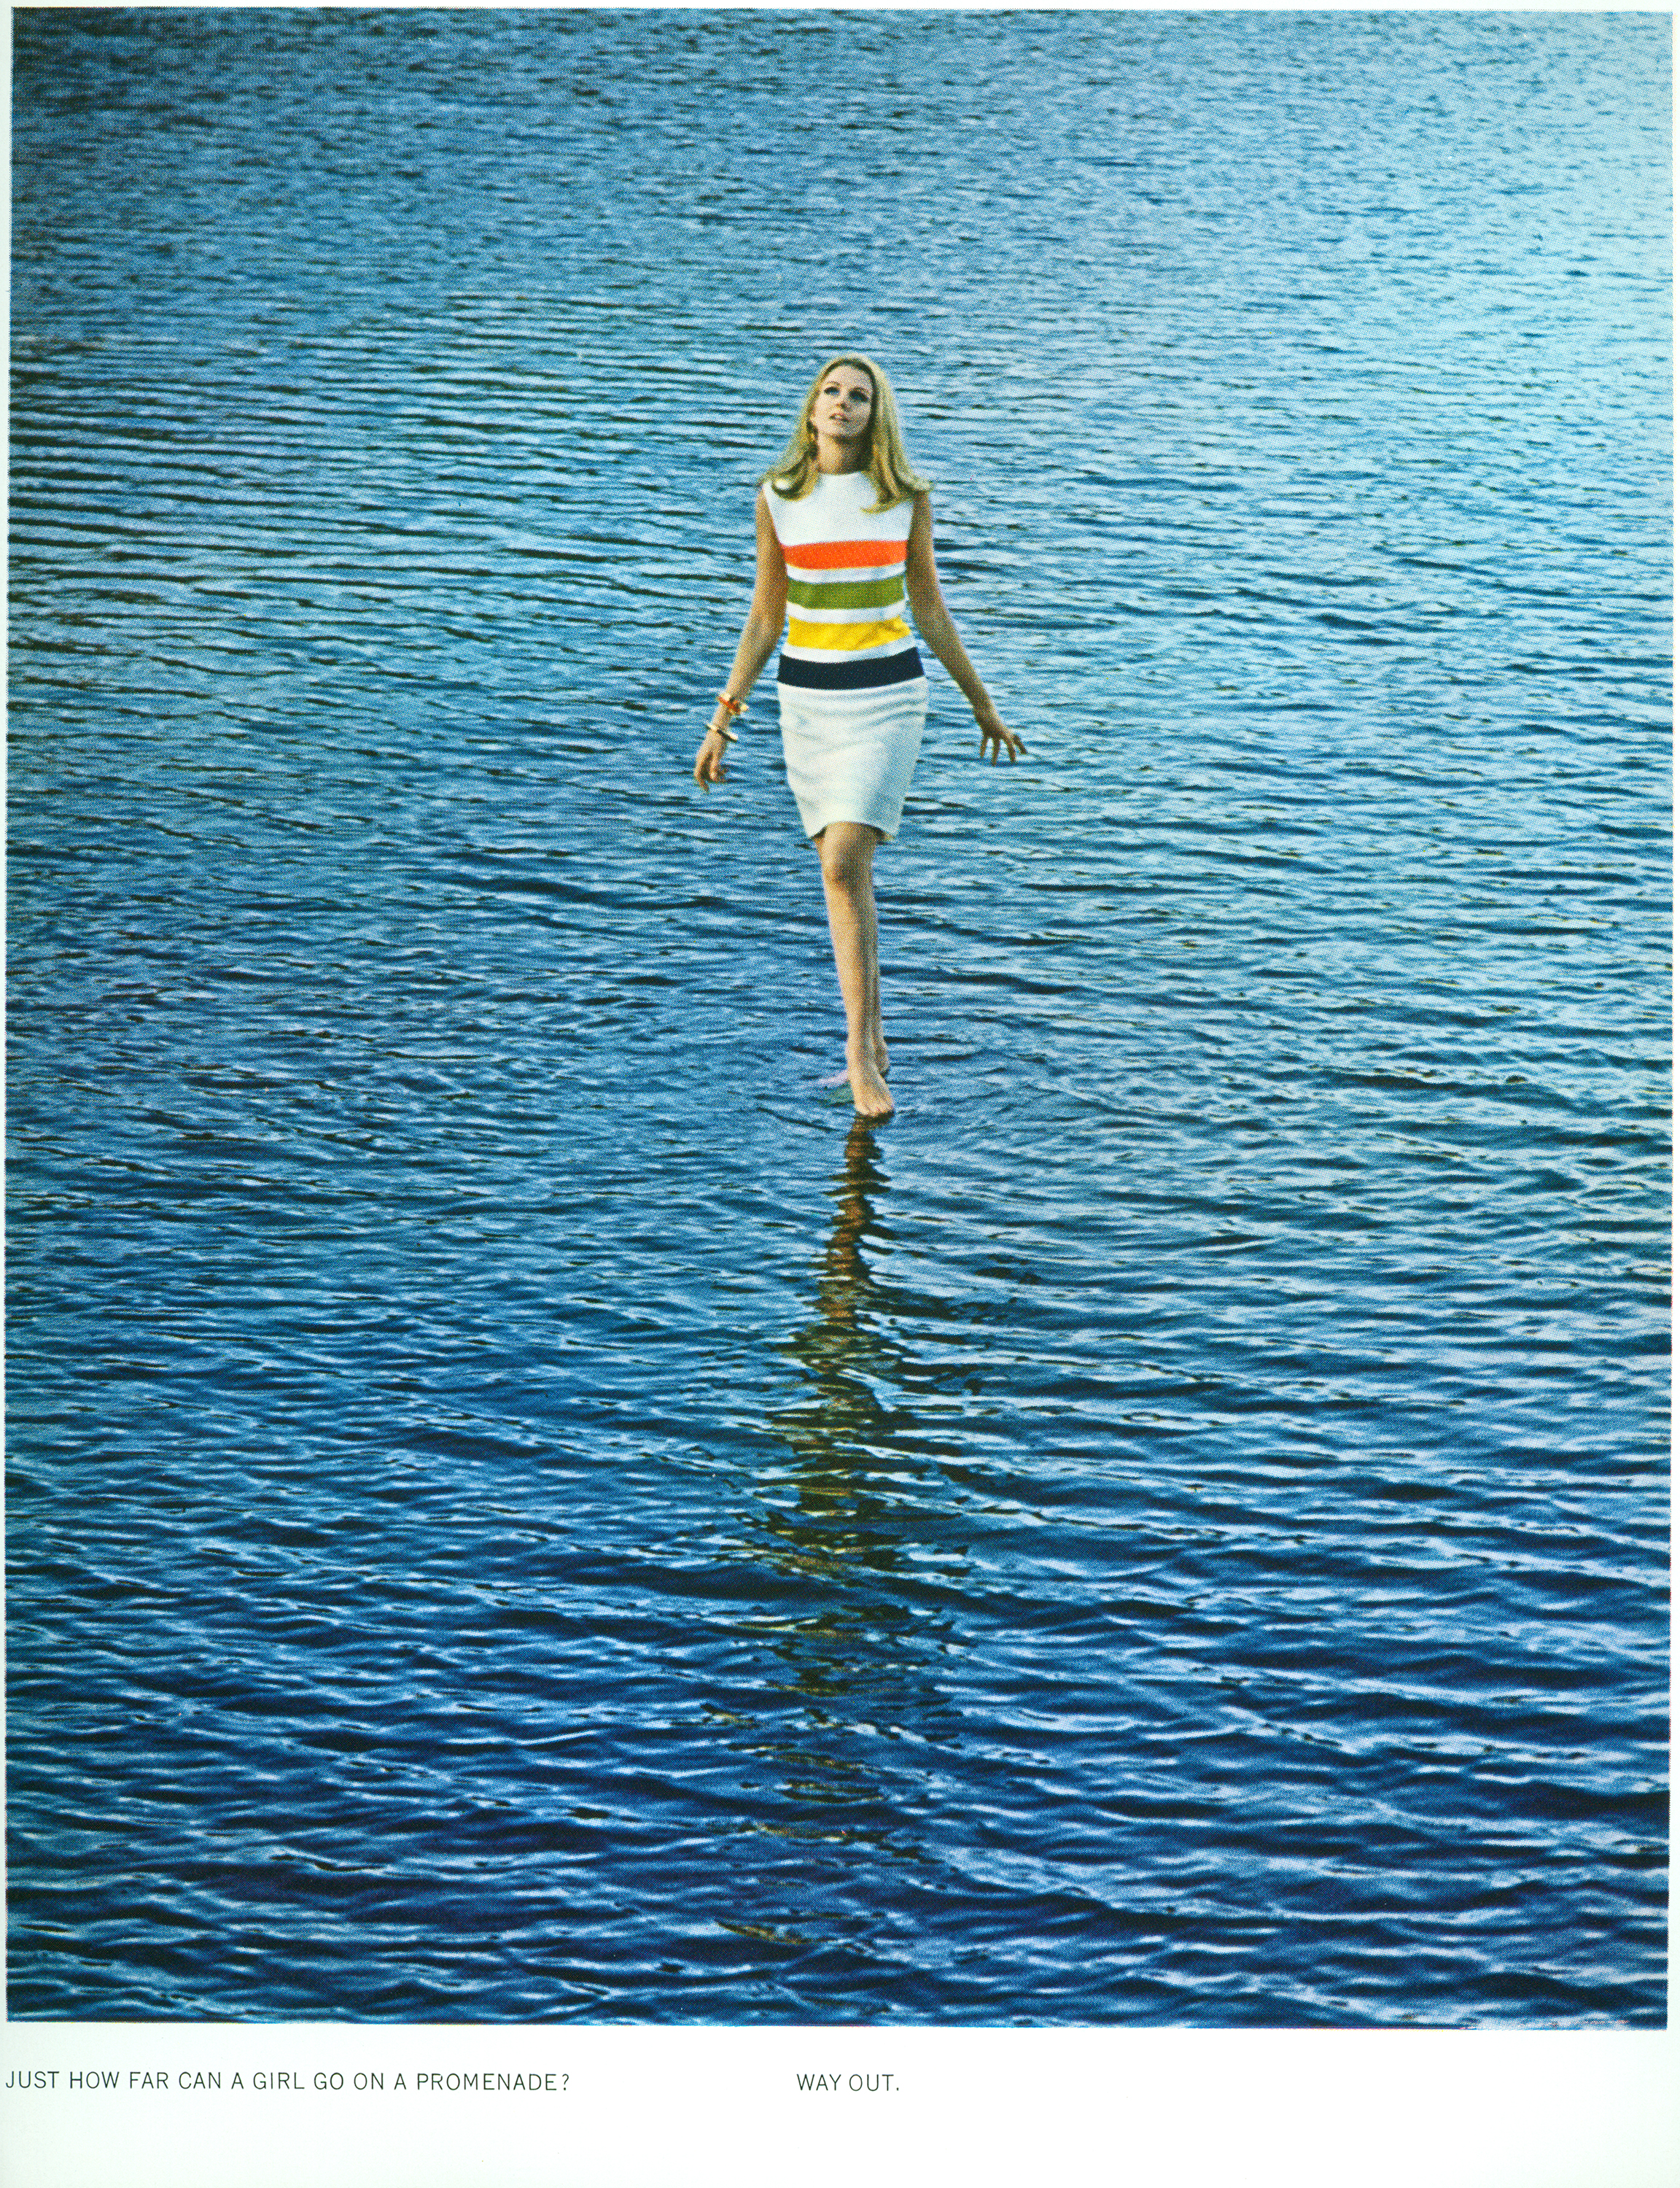 Color photo of a woman in a dress with four large orange, yellow, green, and blue stripes walking on water.